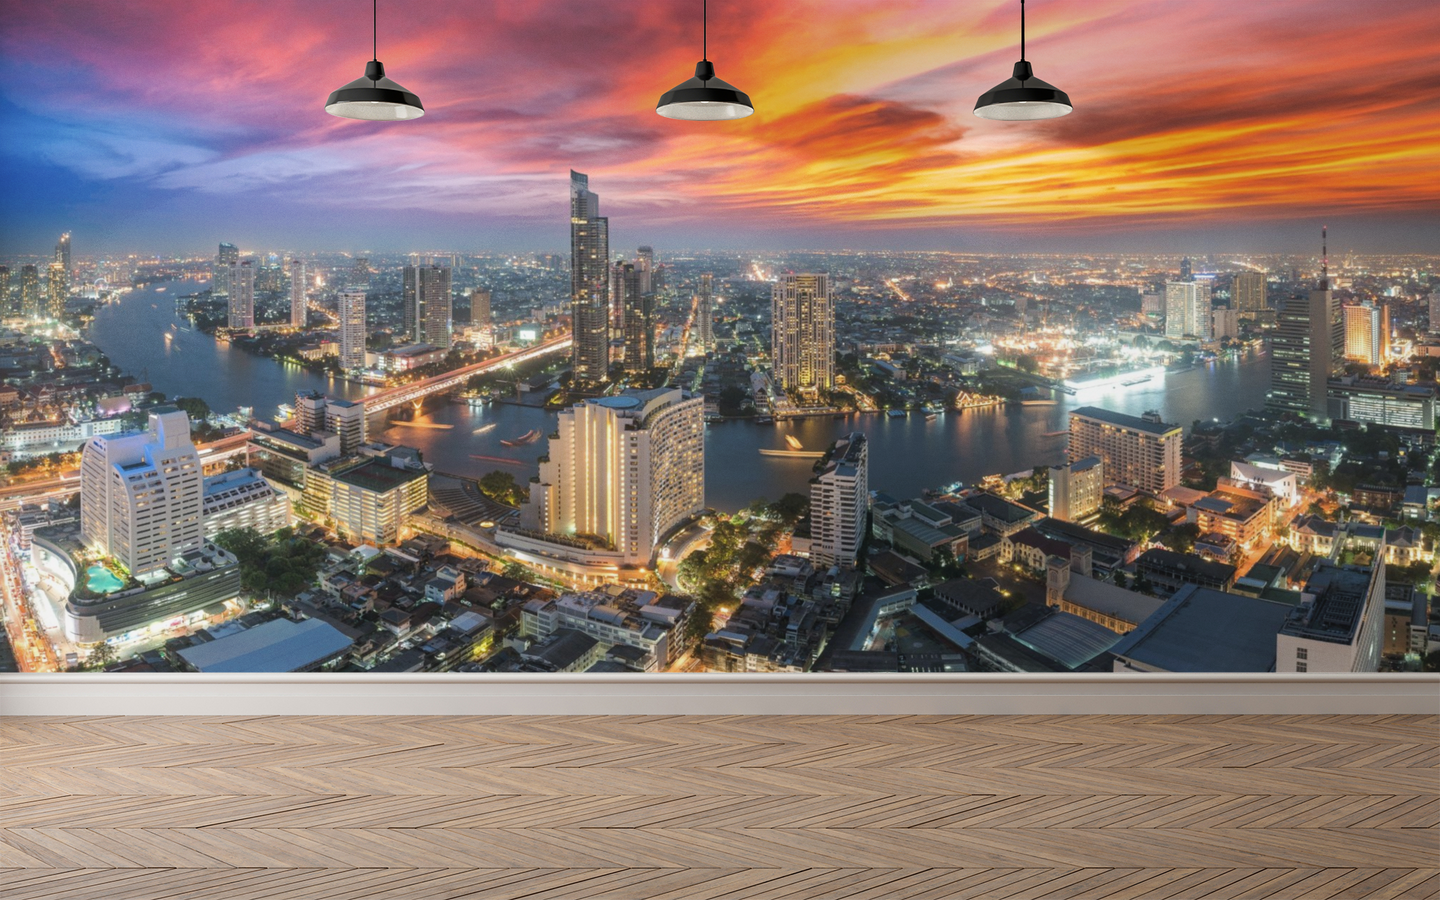 Aerial View City Sunset wall mural - 01107 - Wall Murals Printing - wall art